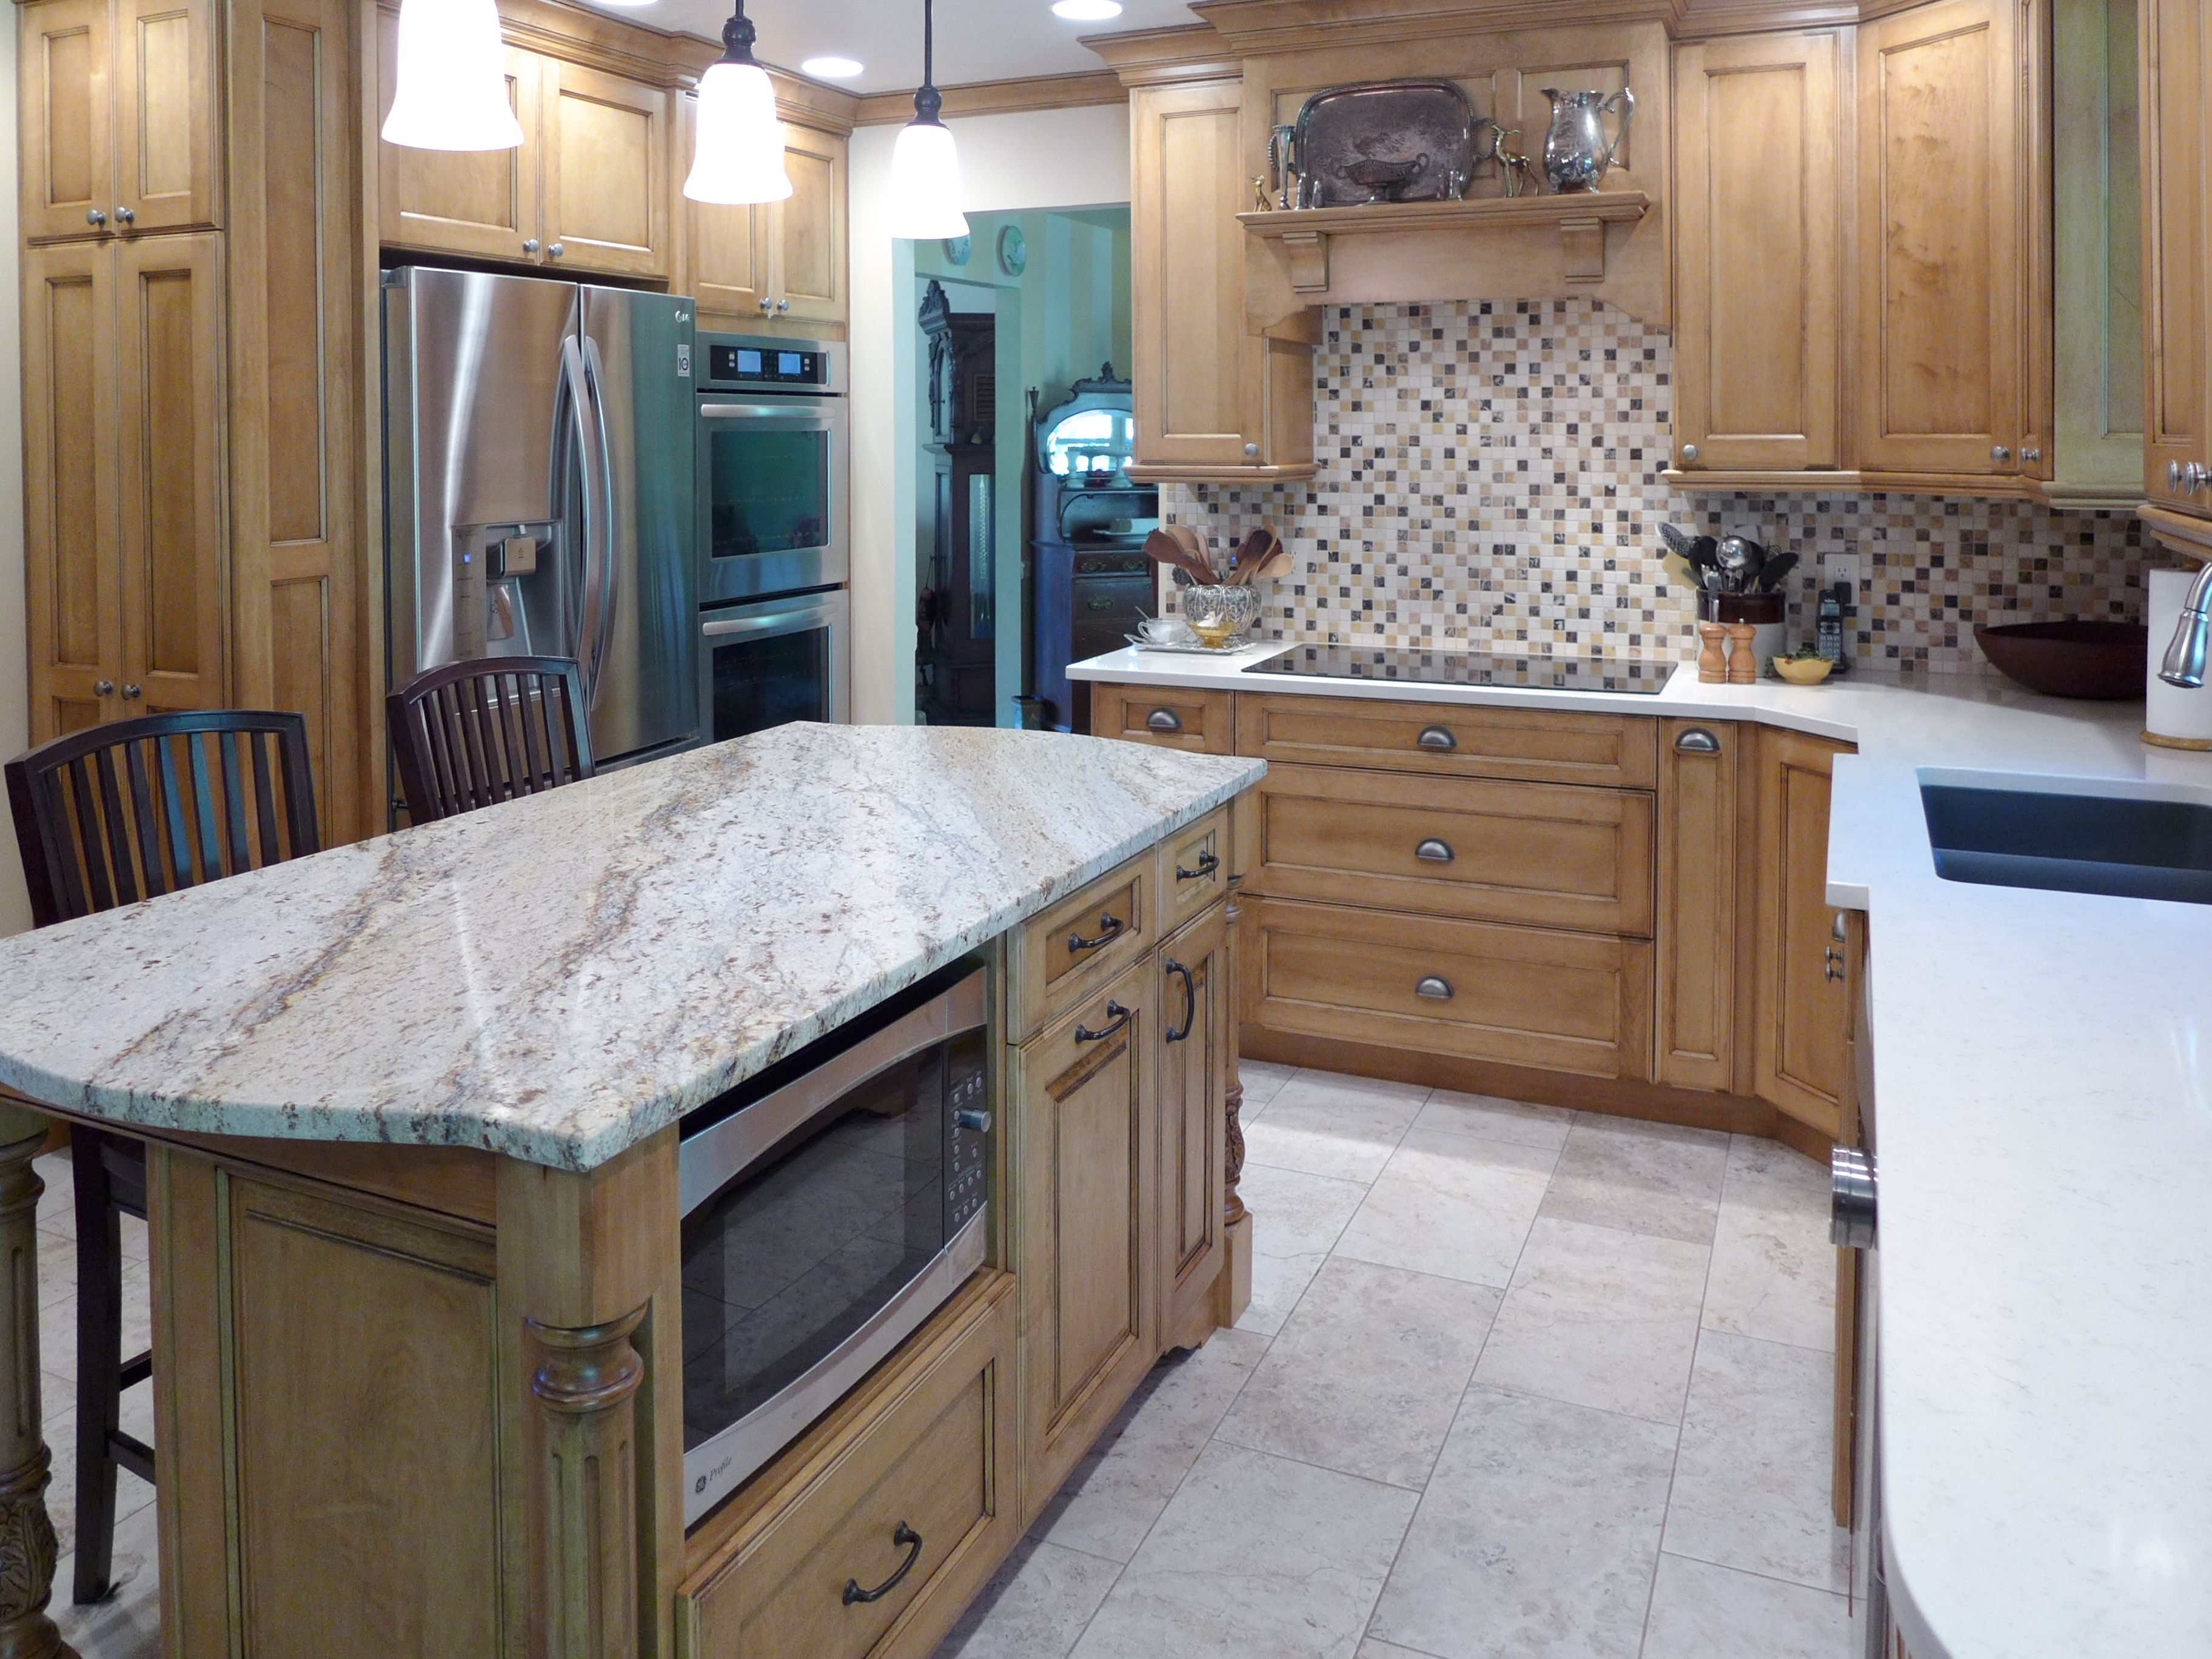 kitchens by accent interiors kitchen remodel utah Kitchen Remodel Vortium Silestone Quartz countertop with a granite island and custom made cabinets